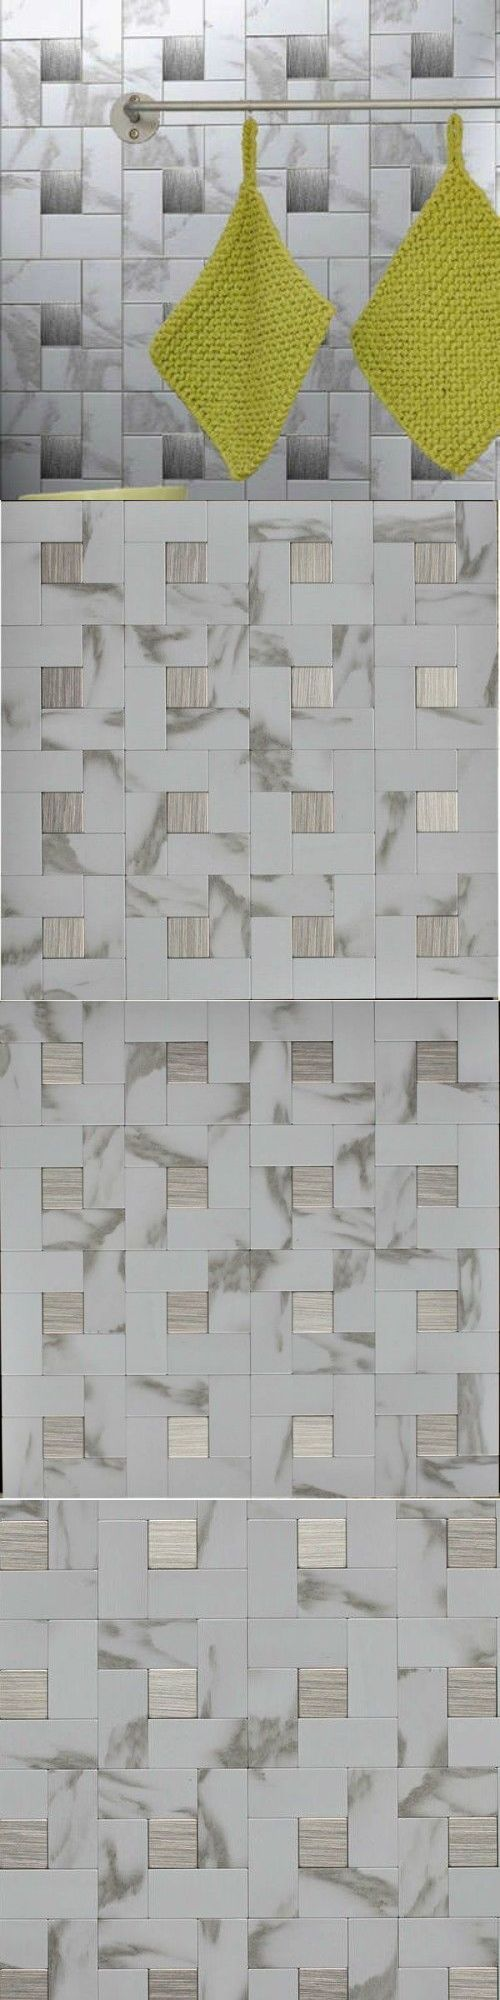 best 25 stick on tiles ideas only on pinterest kitchen walls other wallpaper 52348 self adhesive wall tiles peel and stick backsplash kitchen grey gray white